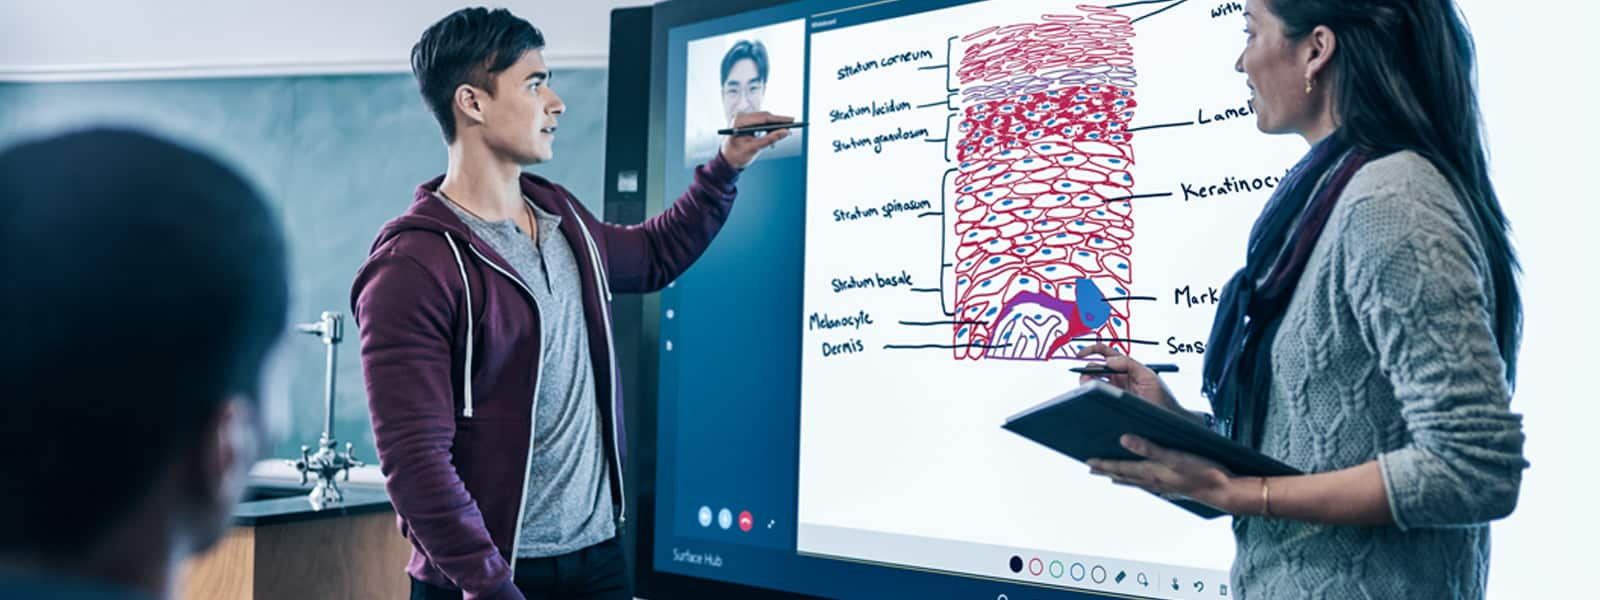 Microsoft Surface Hub's multi-touch display and built-in videoconferencing facilitate and strengthen collaboration and teamwork